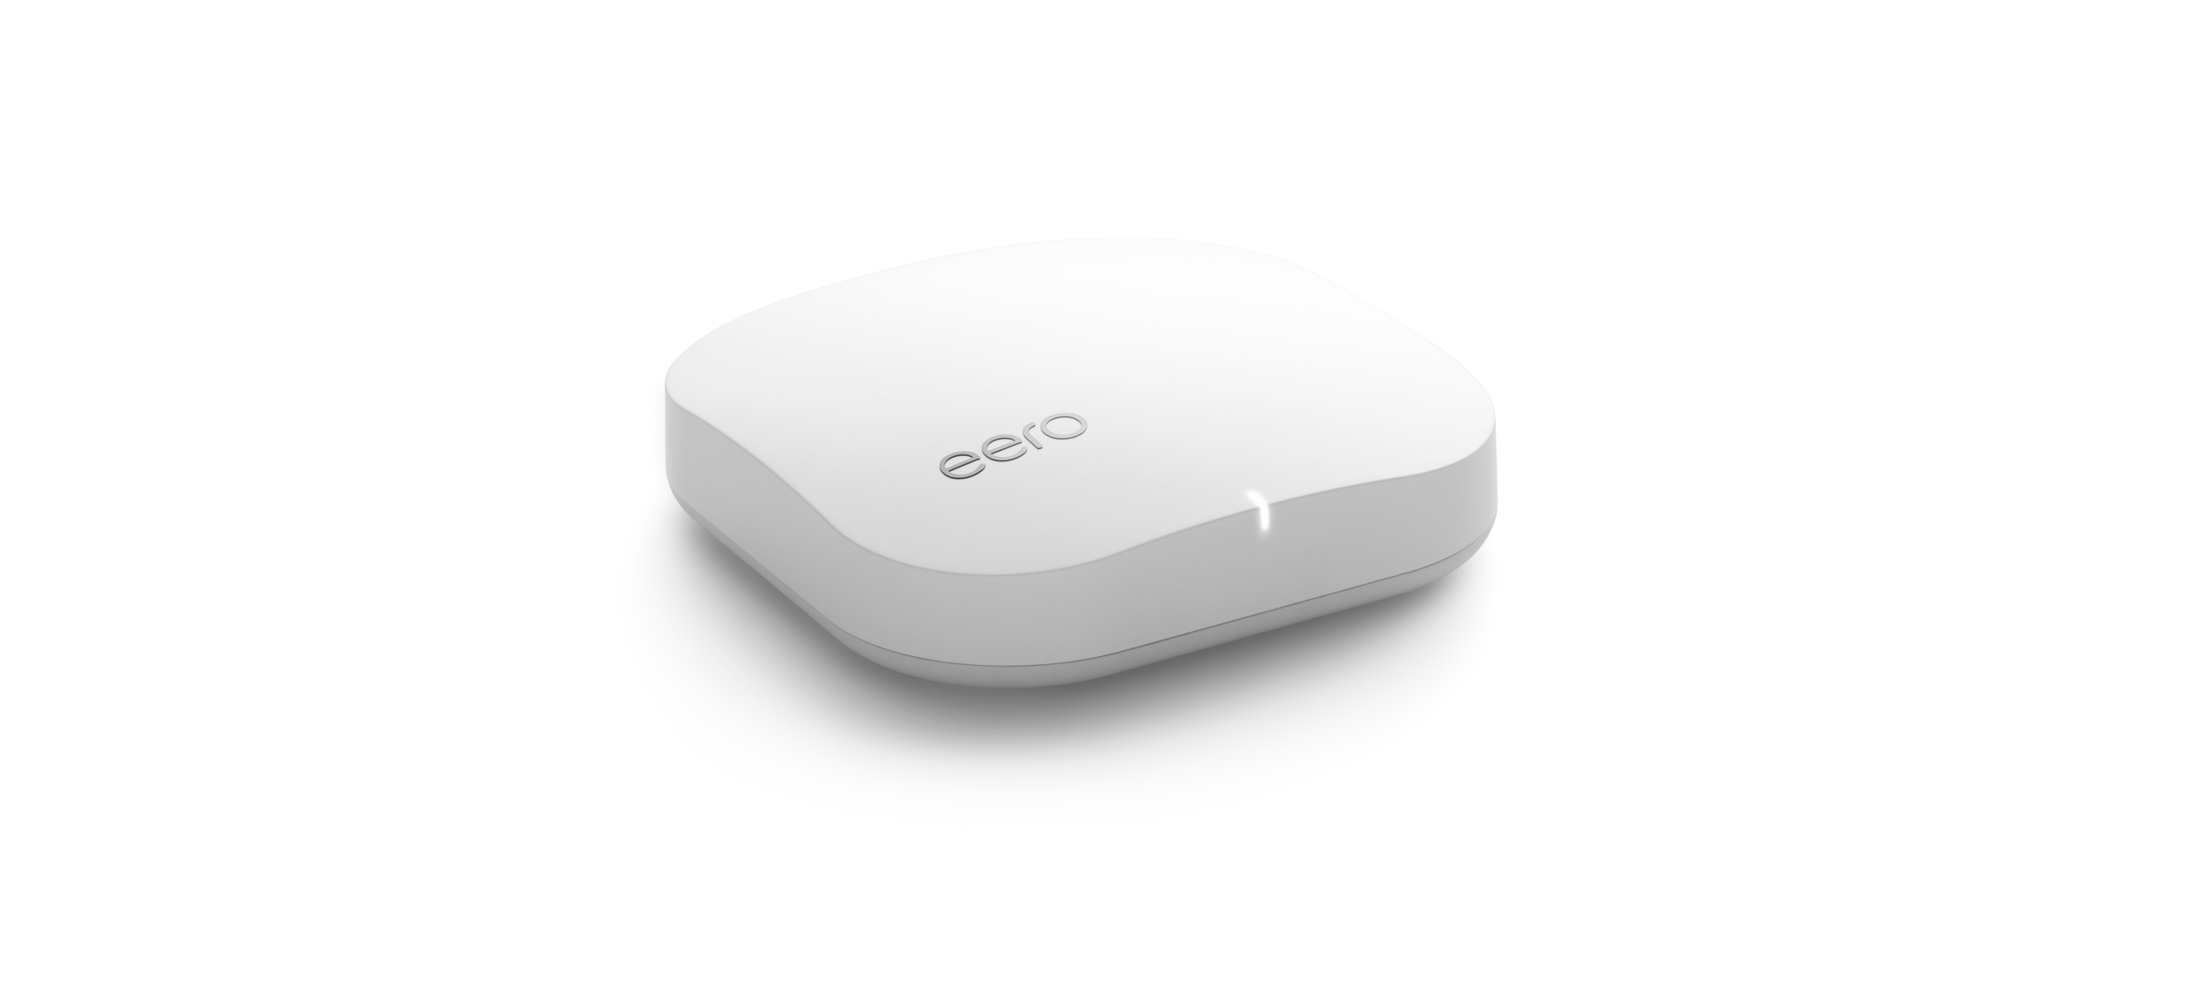 Individual Eero Start Or Add To A System Legally In Canada 240v Power Outlet From Stove